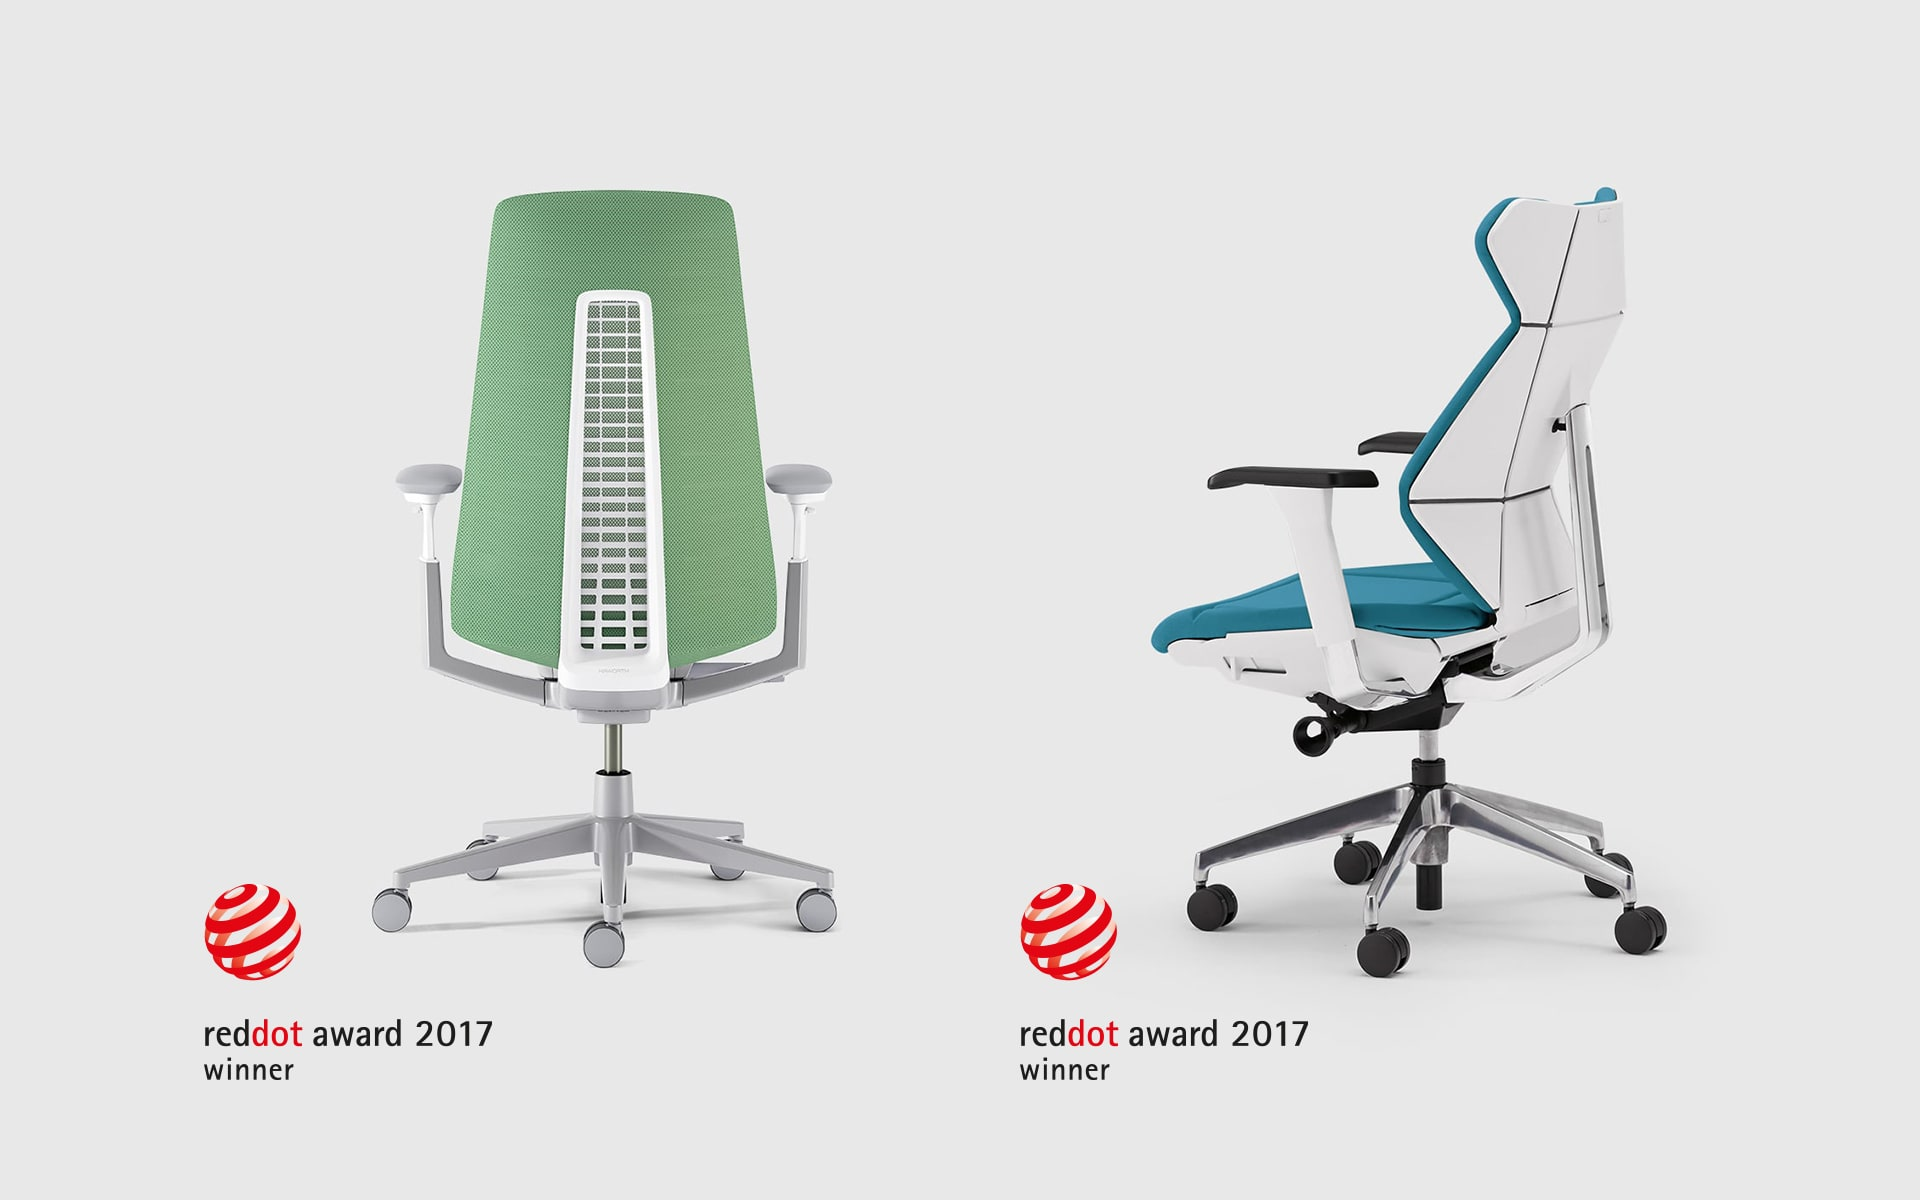 The Haworth Fern office chair in green and the ITOKI FF office chair in white and blue, both by ITO Design, with the logo of the Red Dot Design Award